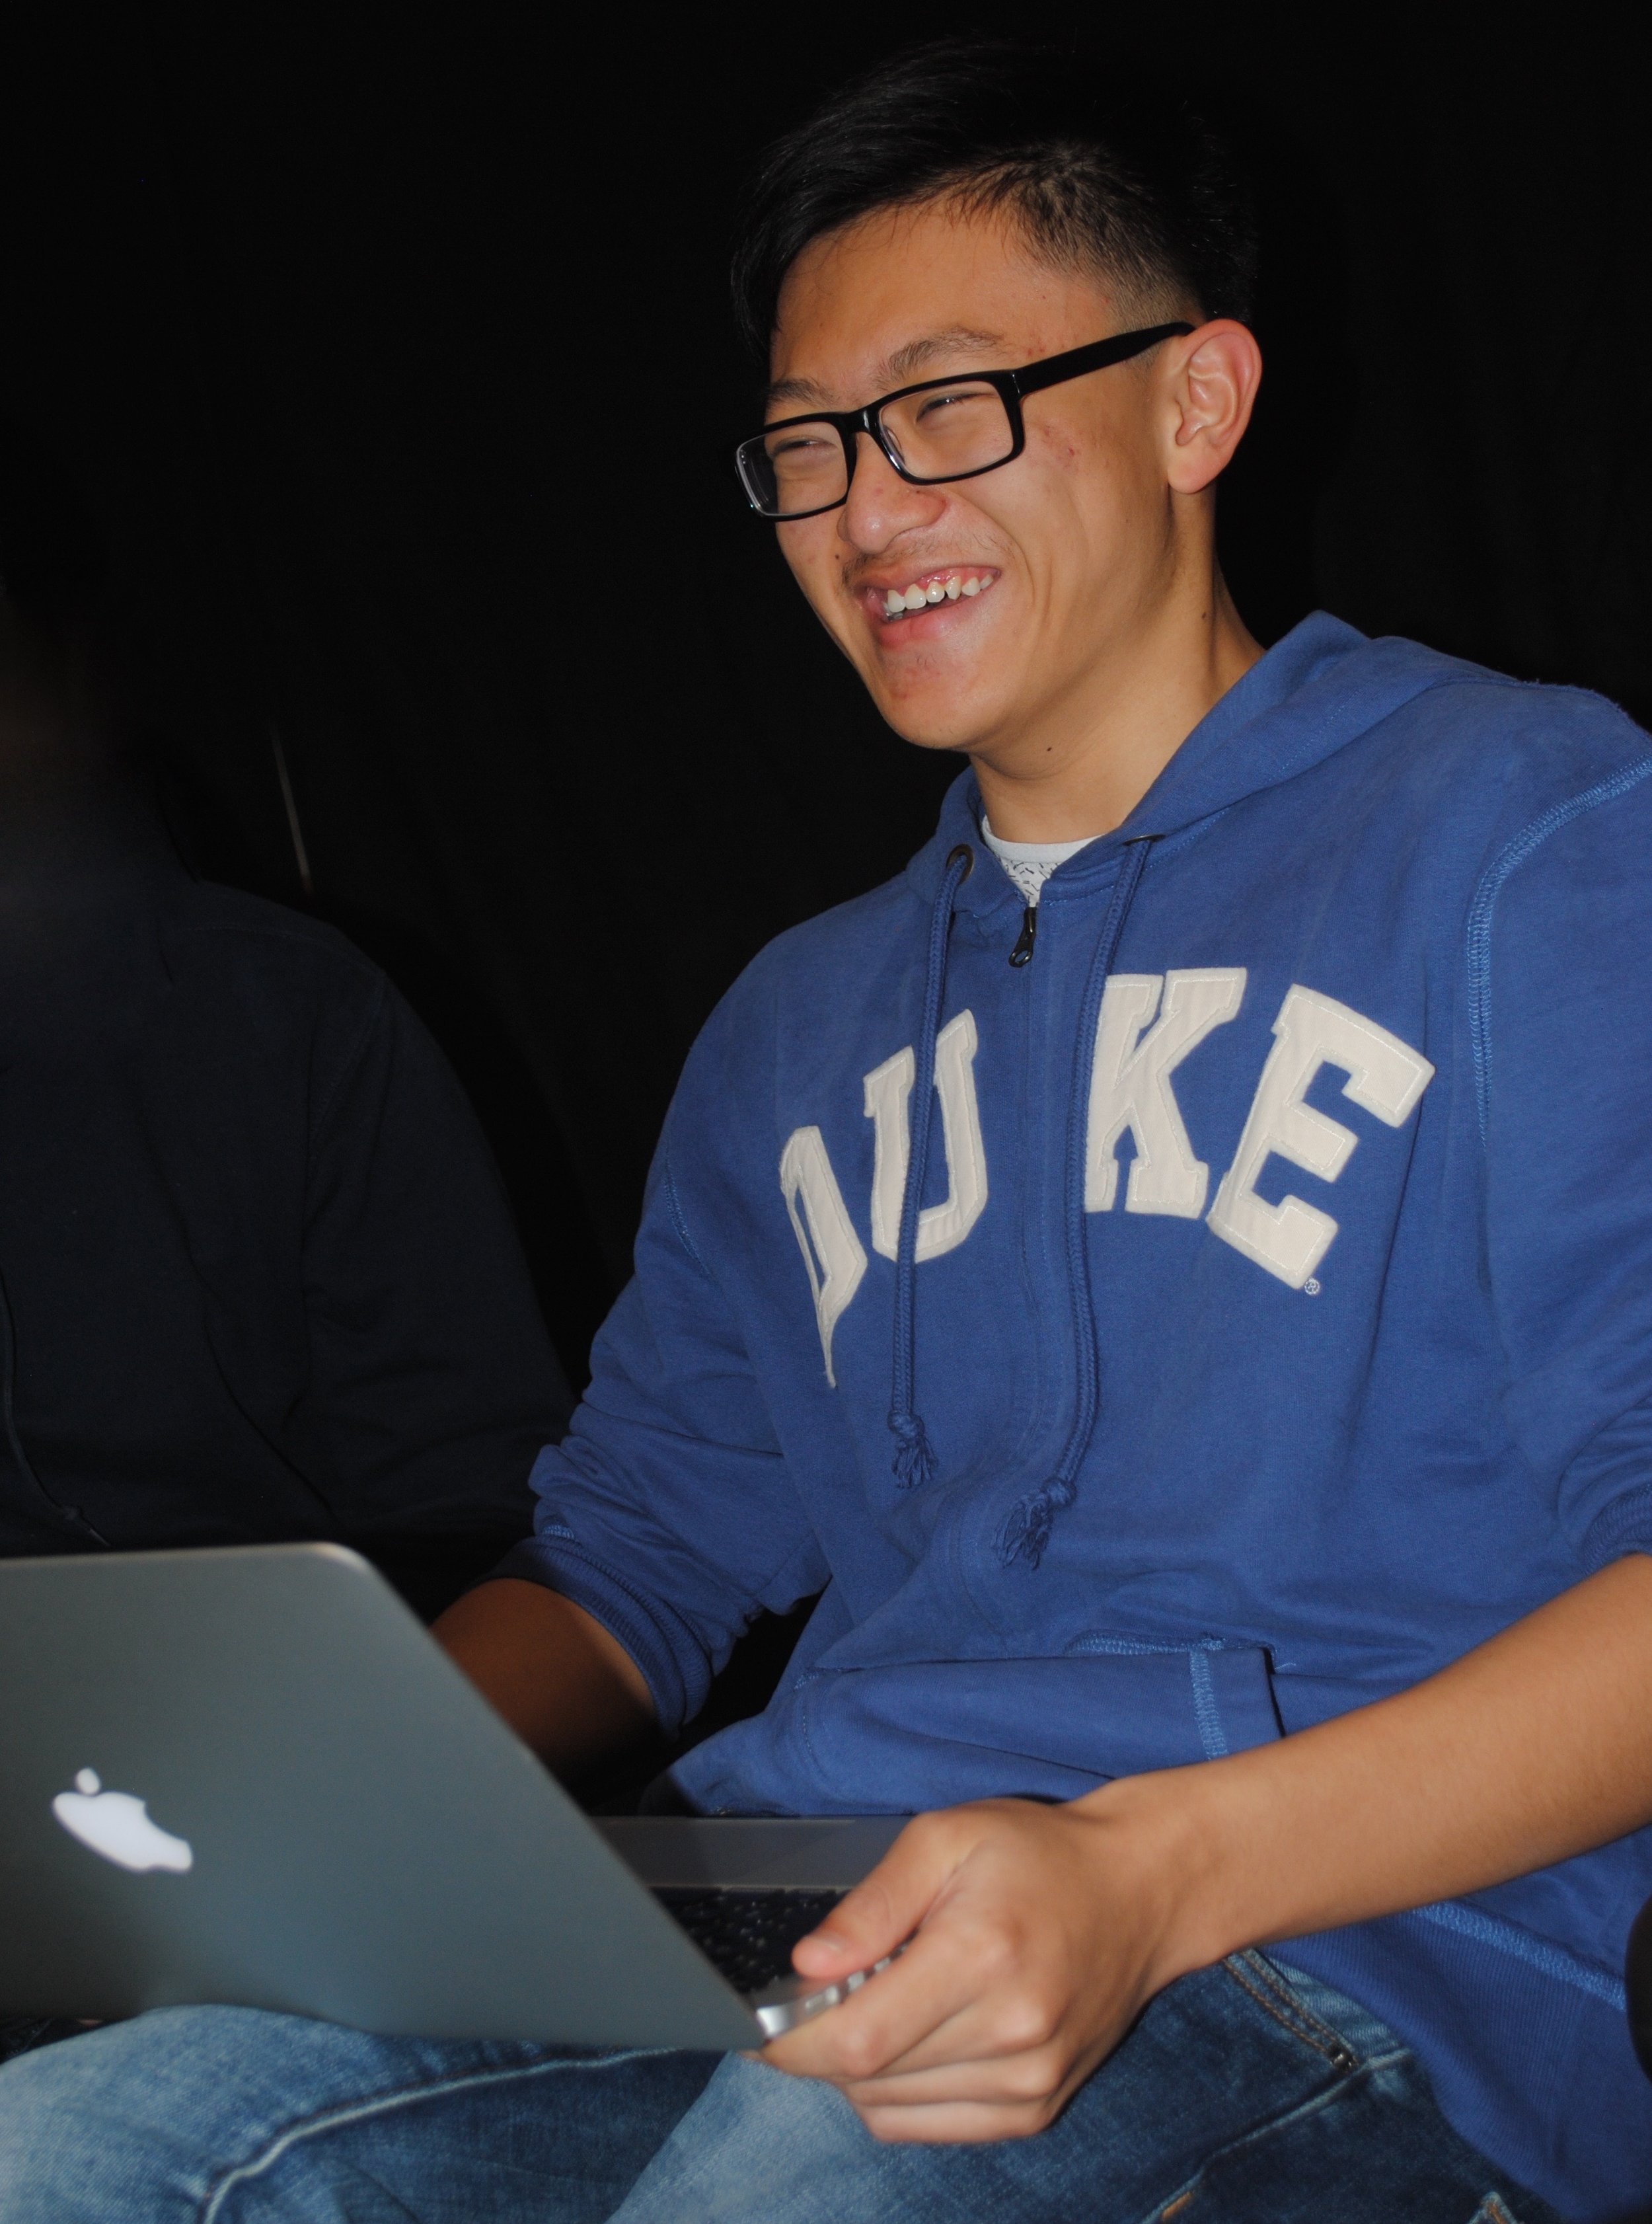 """Alex Zhou,   Masters in Engineering Management     """"I am building an MVP to help predict the perfect gift for your friends and family using Pinterest and Amazon's APIs. I honestly had absolutely no idea how to build it. I barely have any academic training in computer programming. Jason from CoLab was super amazing in helping me turn my ideas into reality. He coached me and gave me the tools I needed to make it happen. The program turned out to be a great success!"""""""